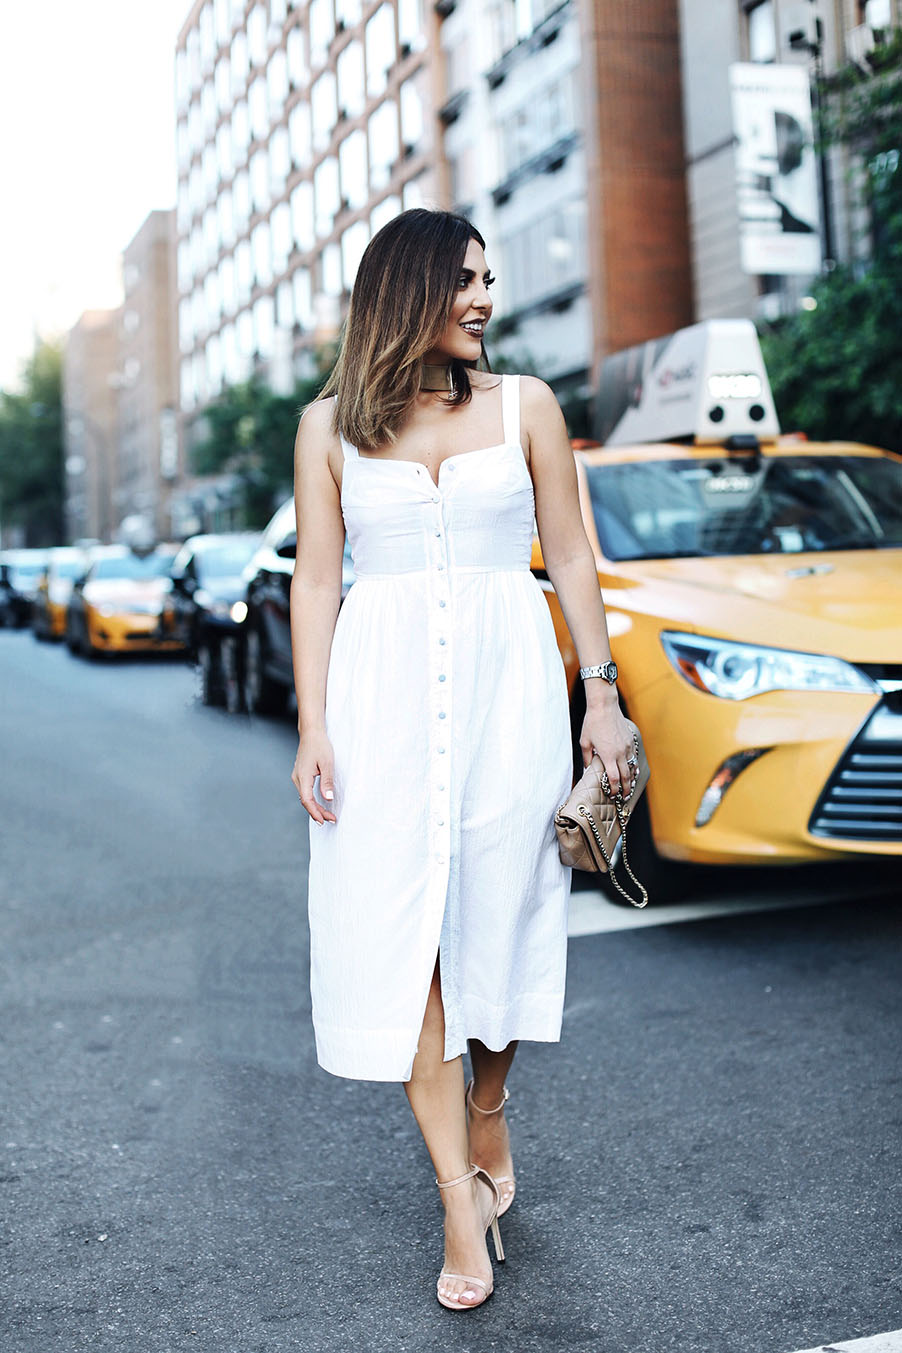 Sona Gasparian wears a simple look at New York Fashion Week.